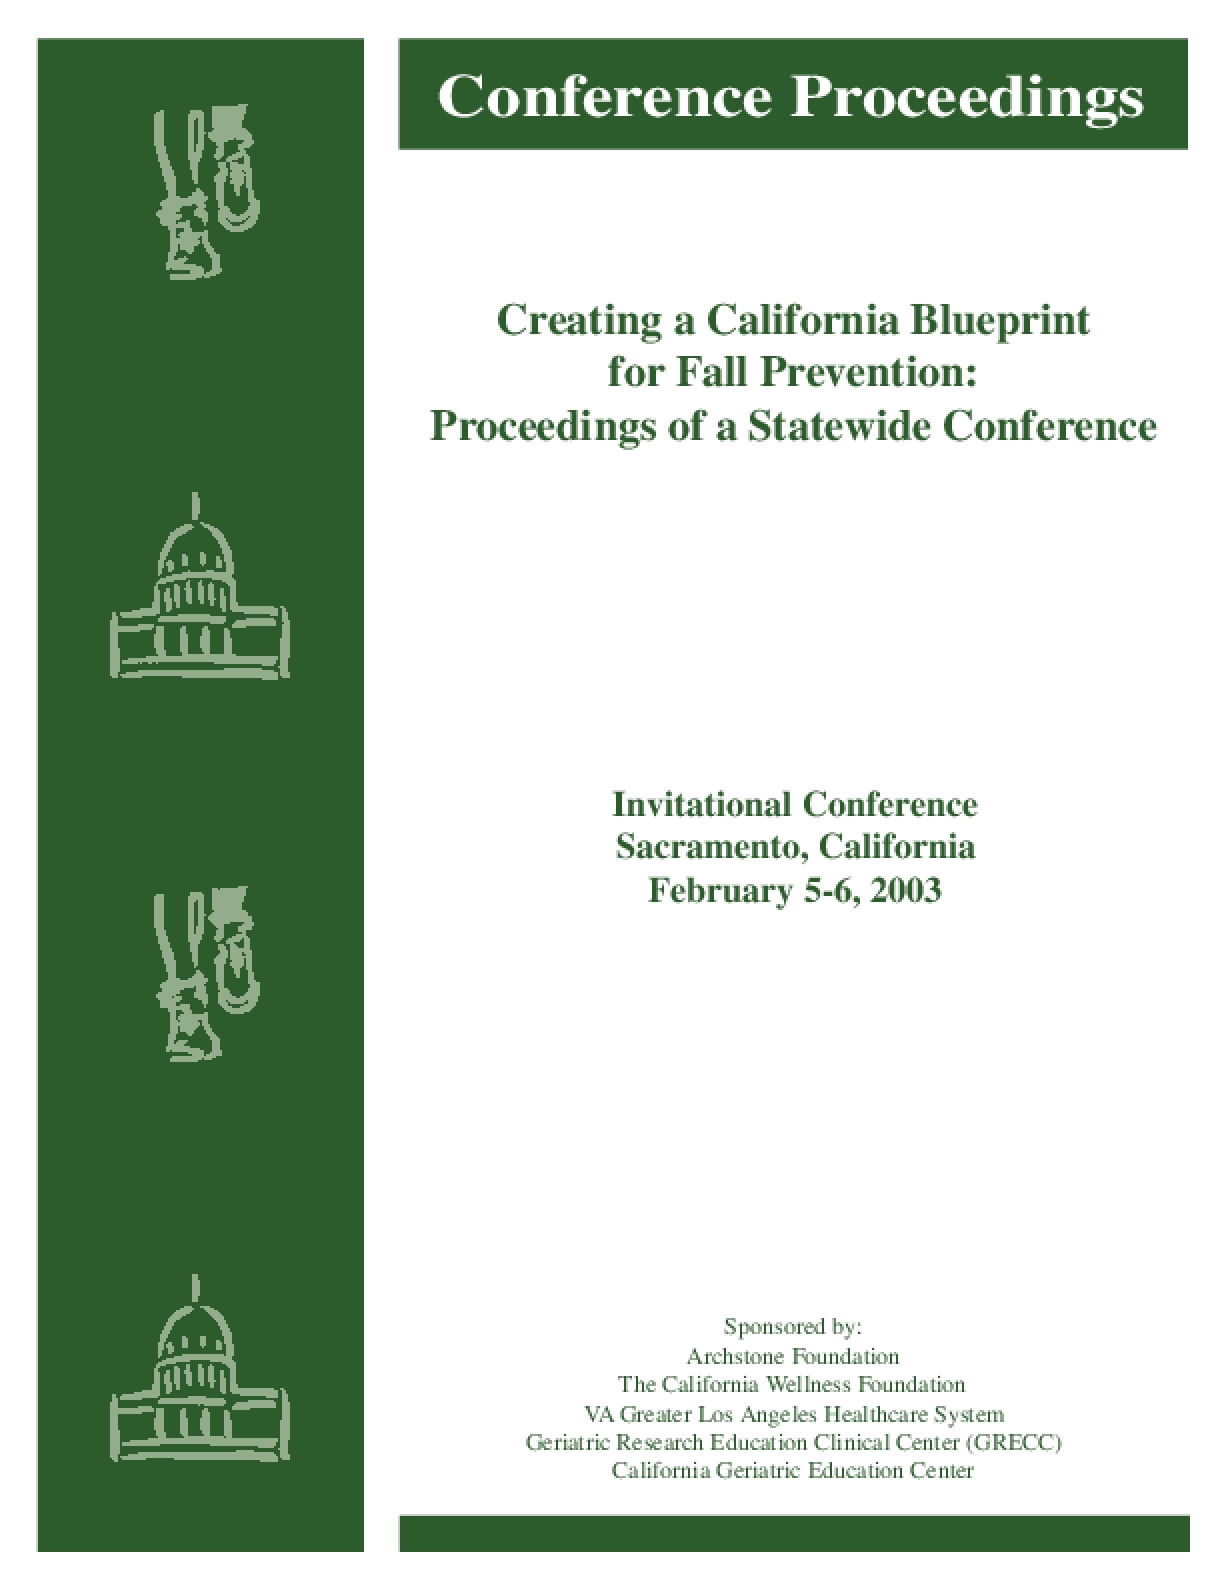 Creating a California Blueprint for Fall Prevention: Proceedings of a Statewide Conference